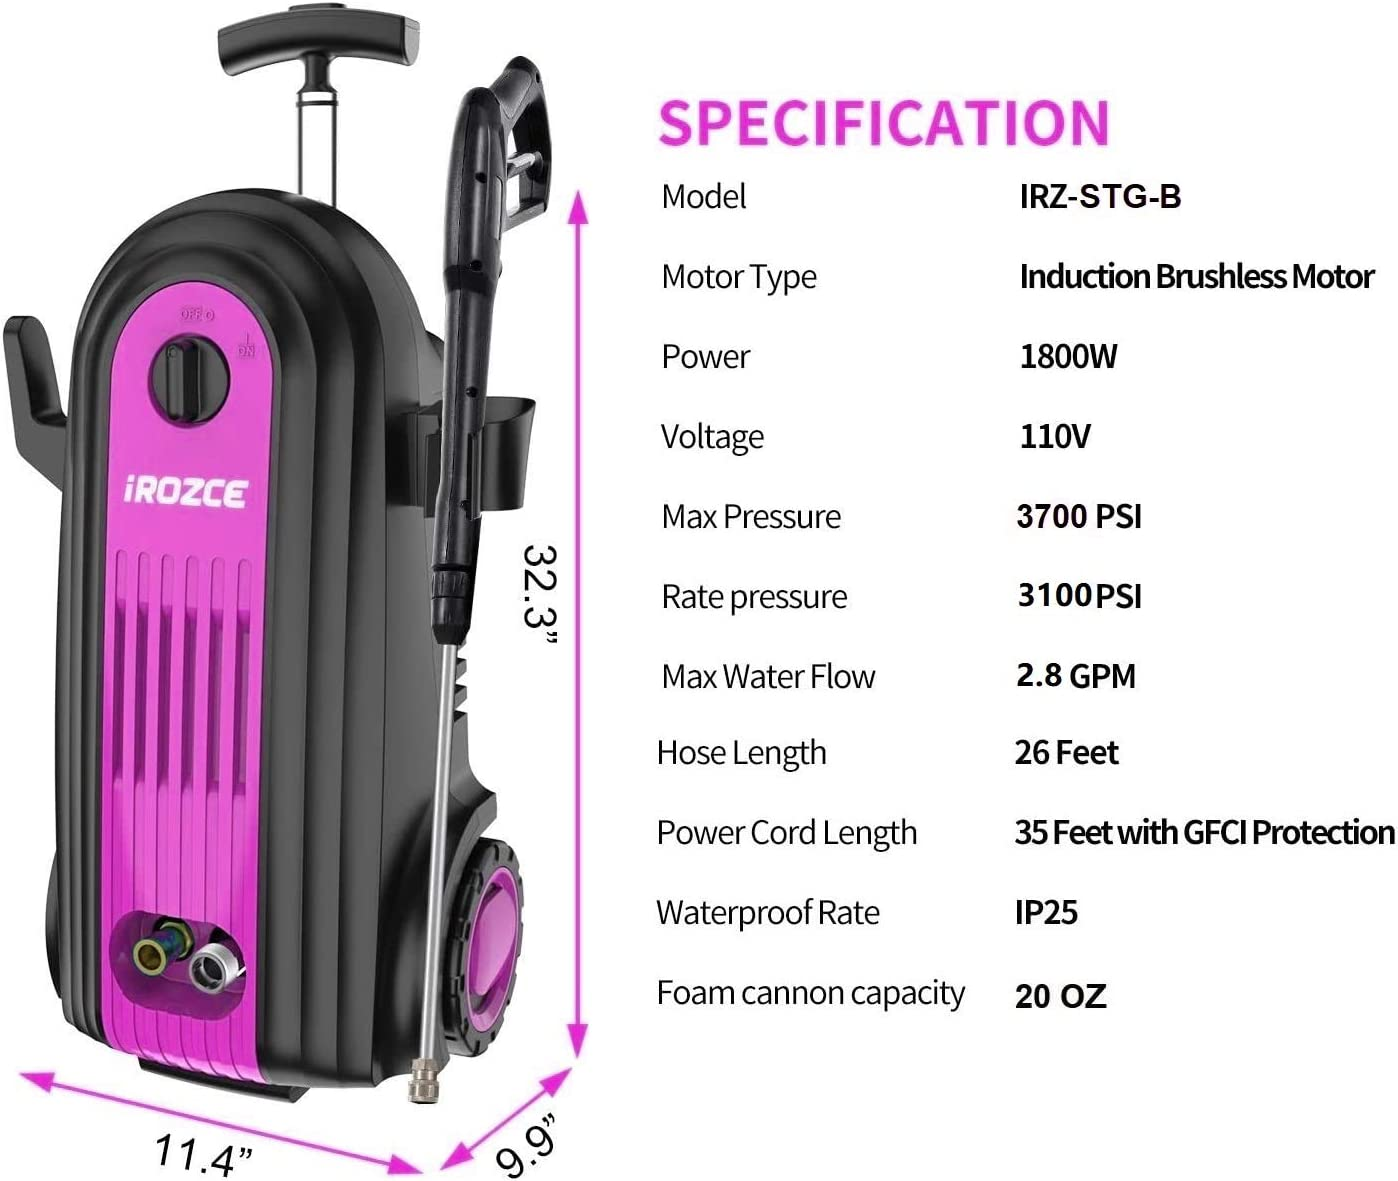 Metal Adapter irozce Pressure Washer Car Washing 3780PSI 2.0GPM Max Brushless Induction Motor Electric Power Washer with Foam Cannon Pink Connector Nozzles for Driveway